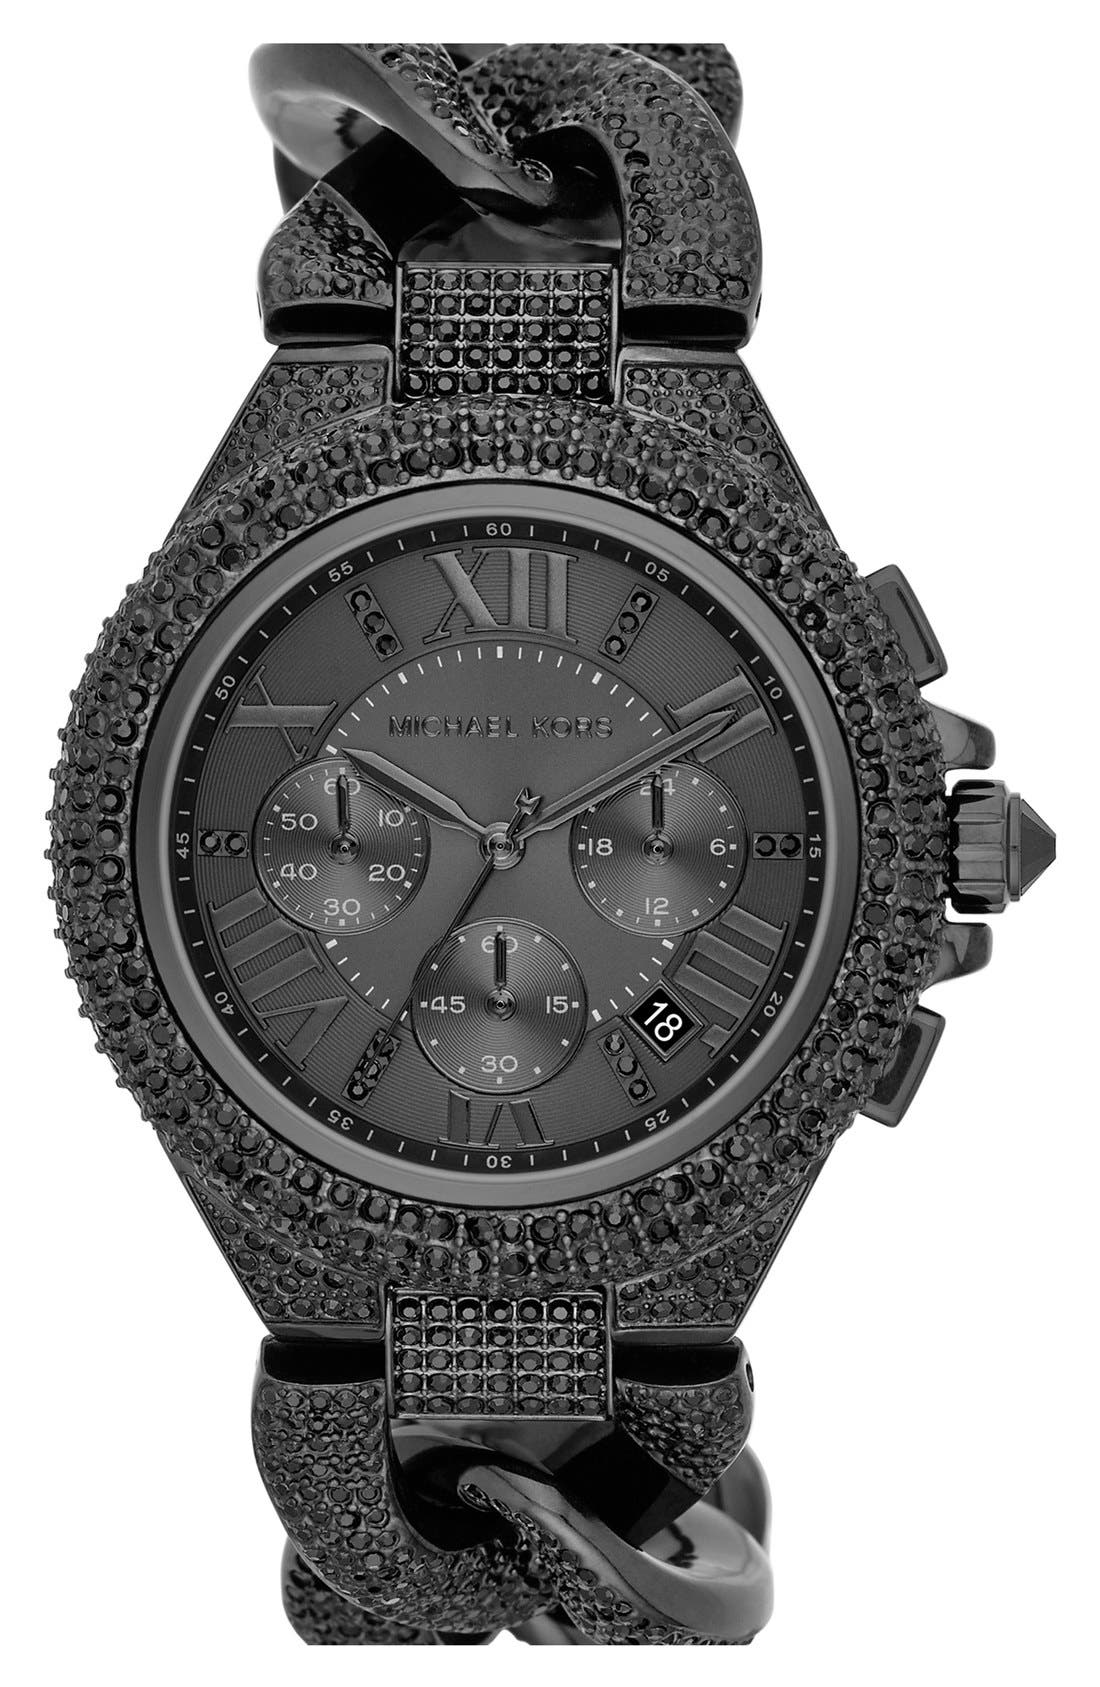 Alternate Image 1 Selected - Michael Kors 'Camille' Crystal Encrusted Chain Link Watch, 44mm